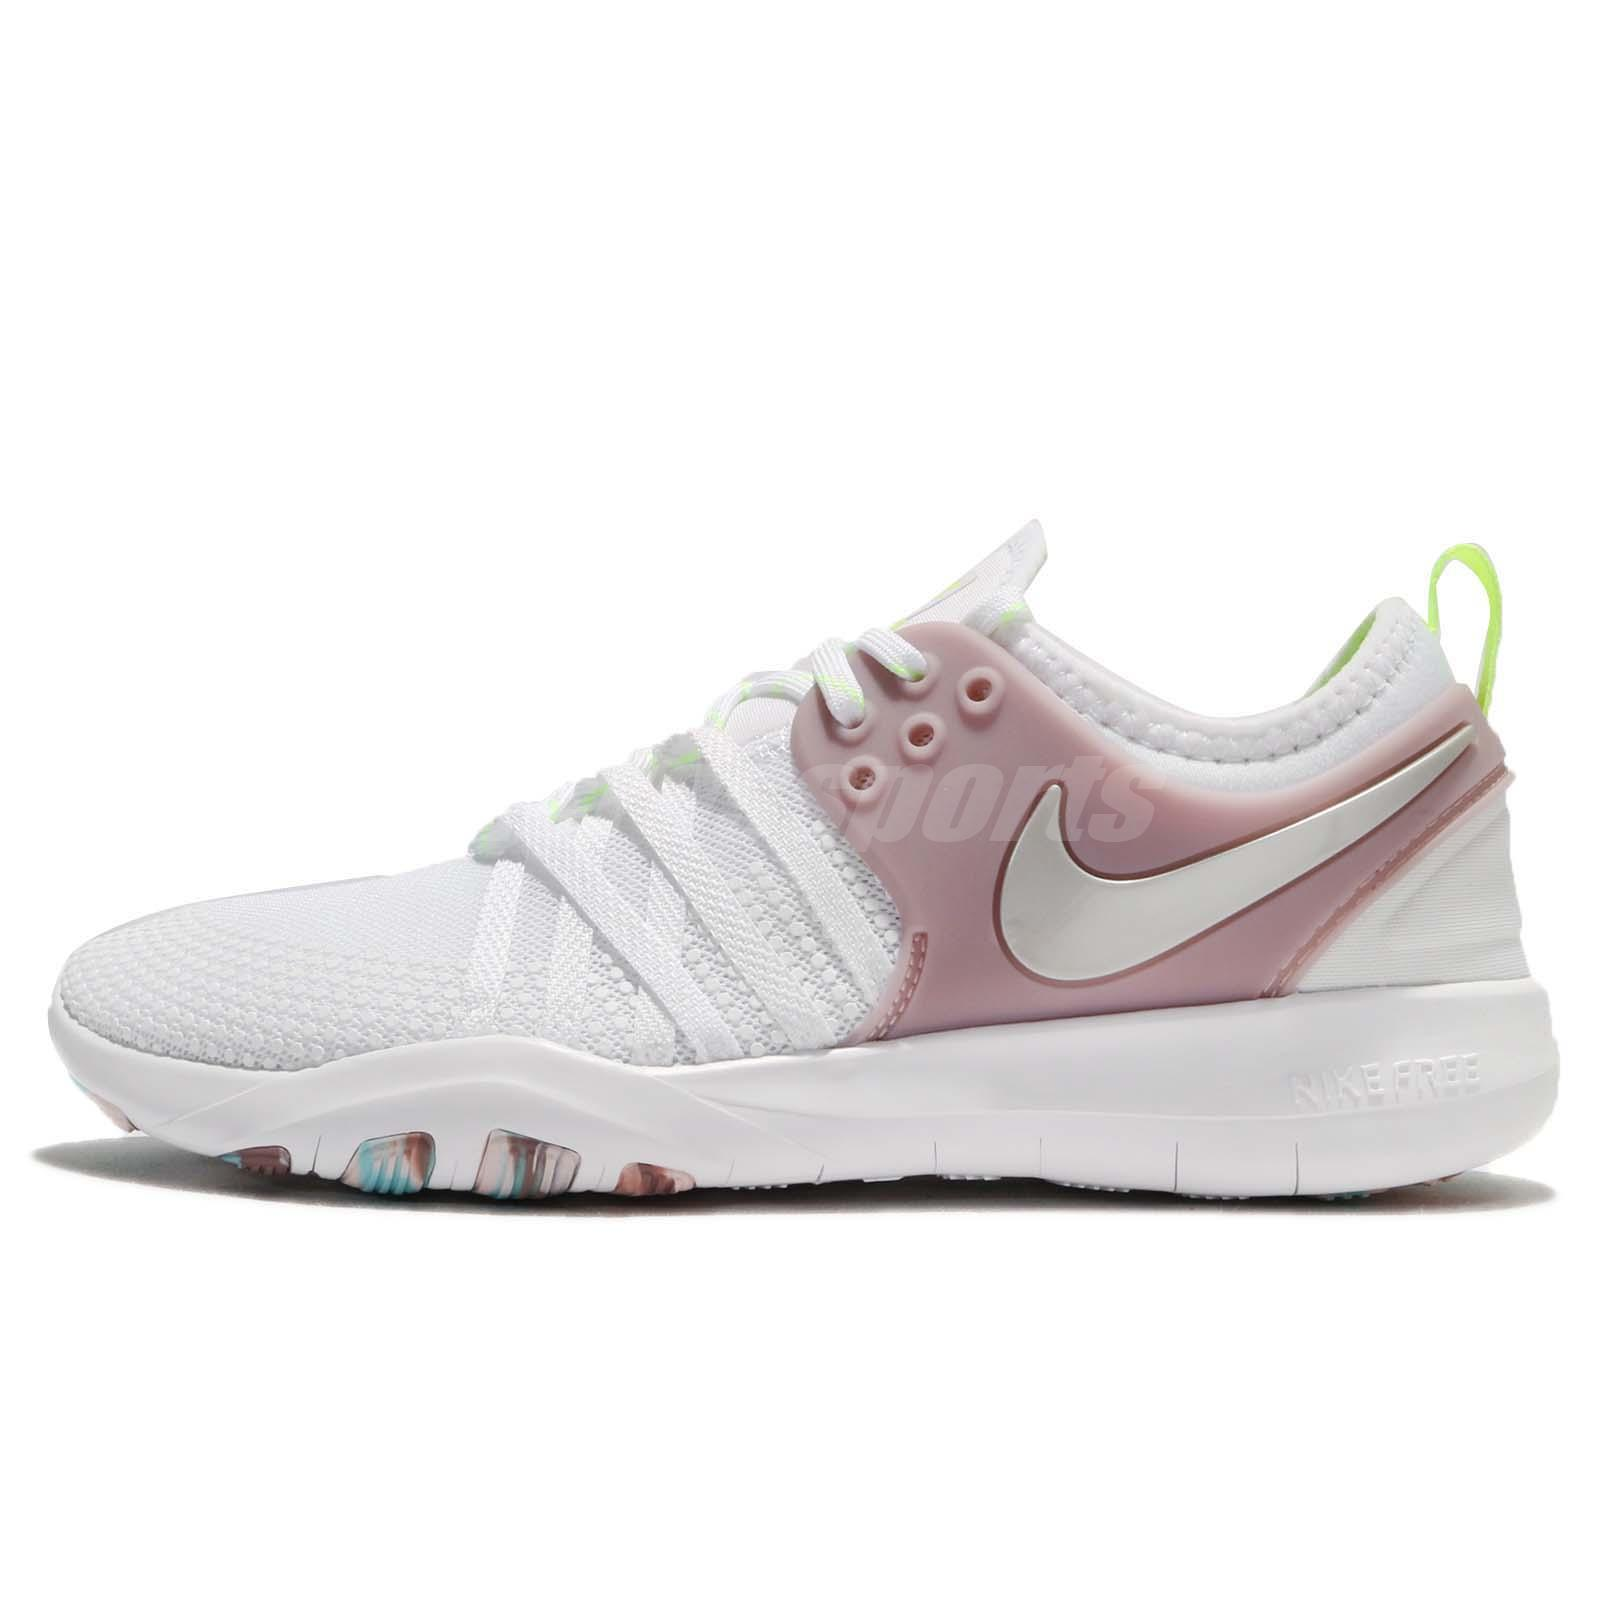 8477f9da5ca Wmns Nike Free TR 7 VII White Elemental Rose Women Training Shoes 904651-102